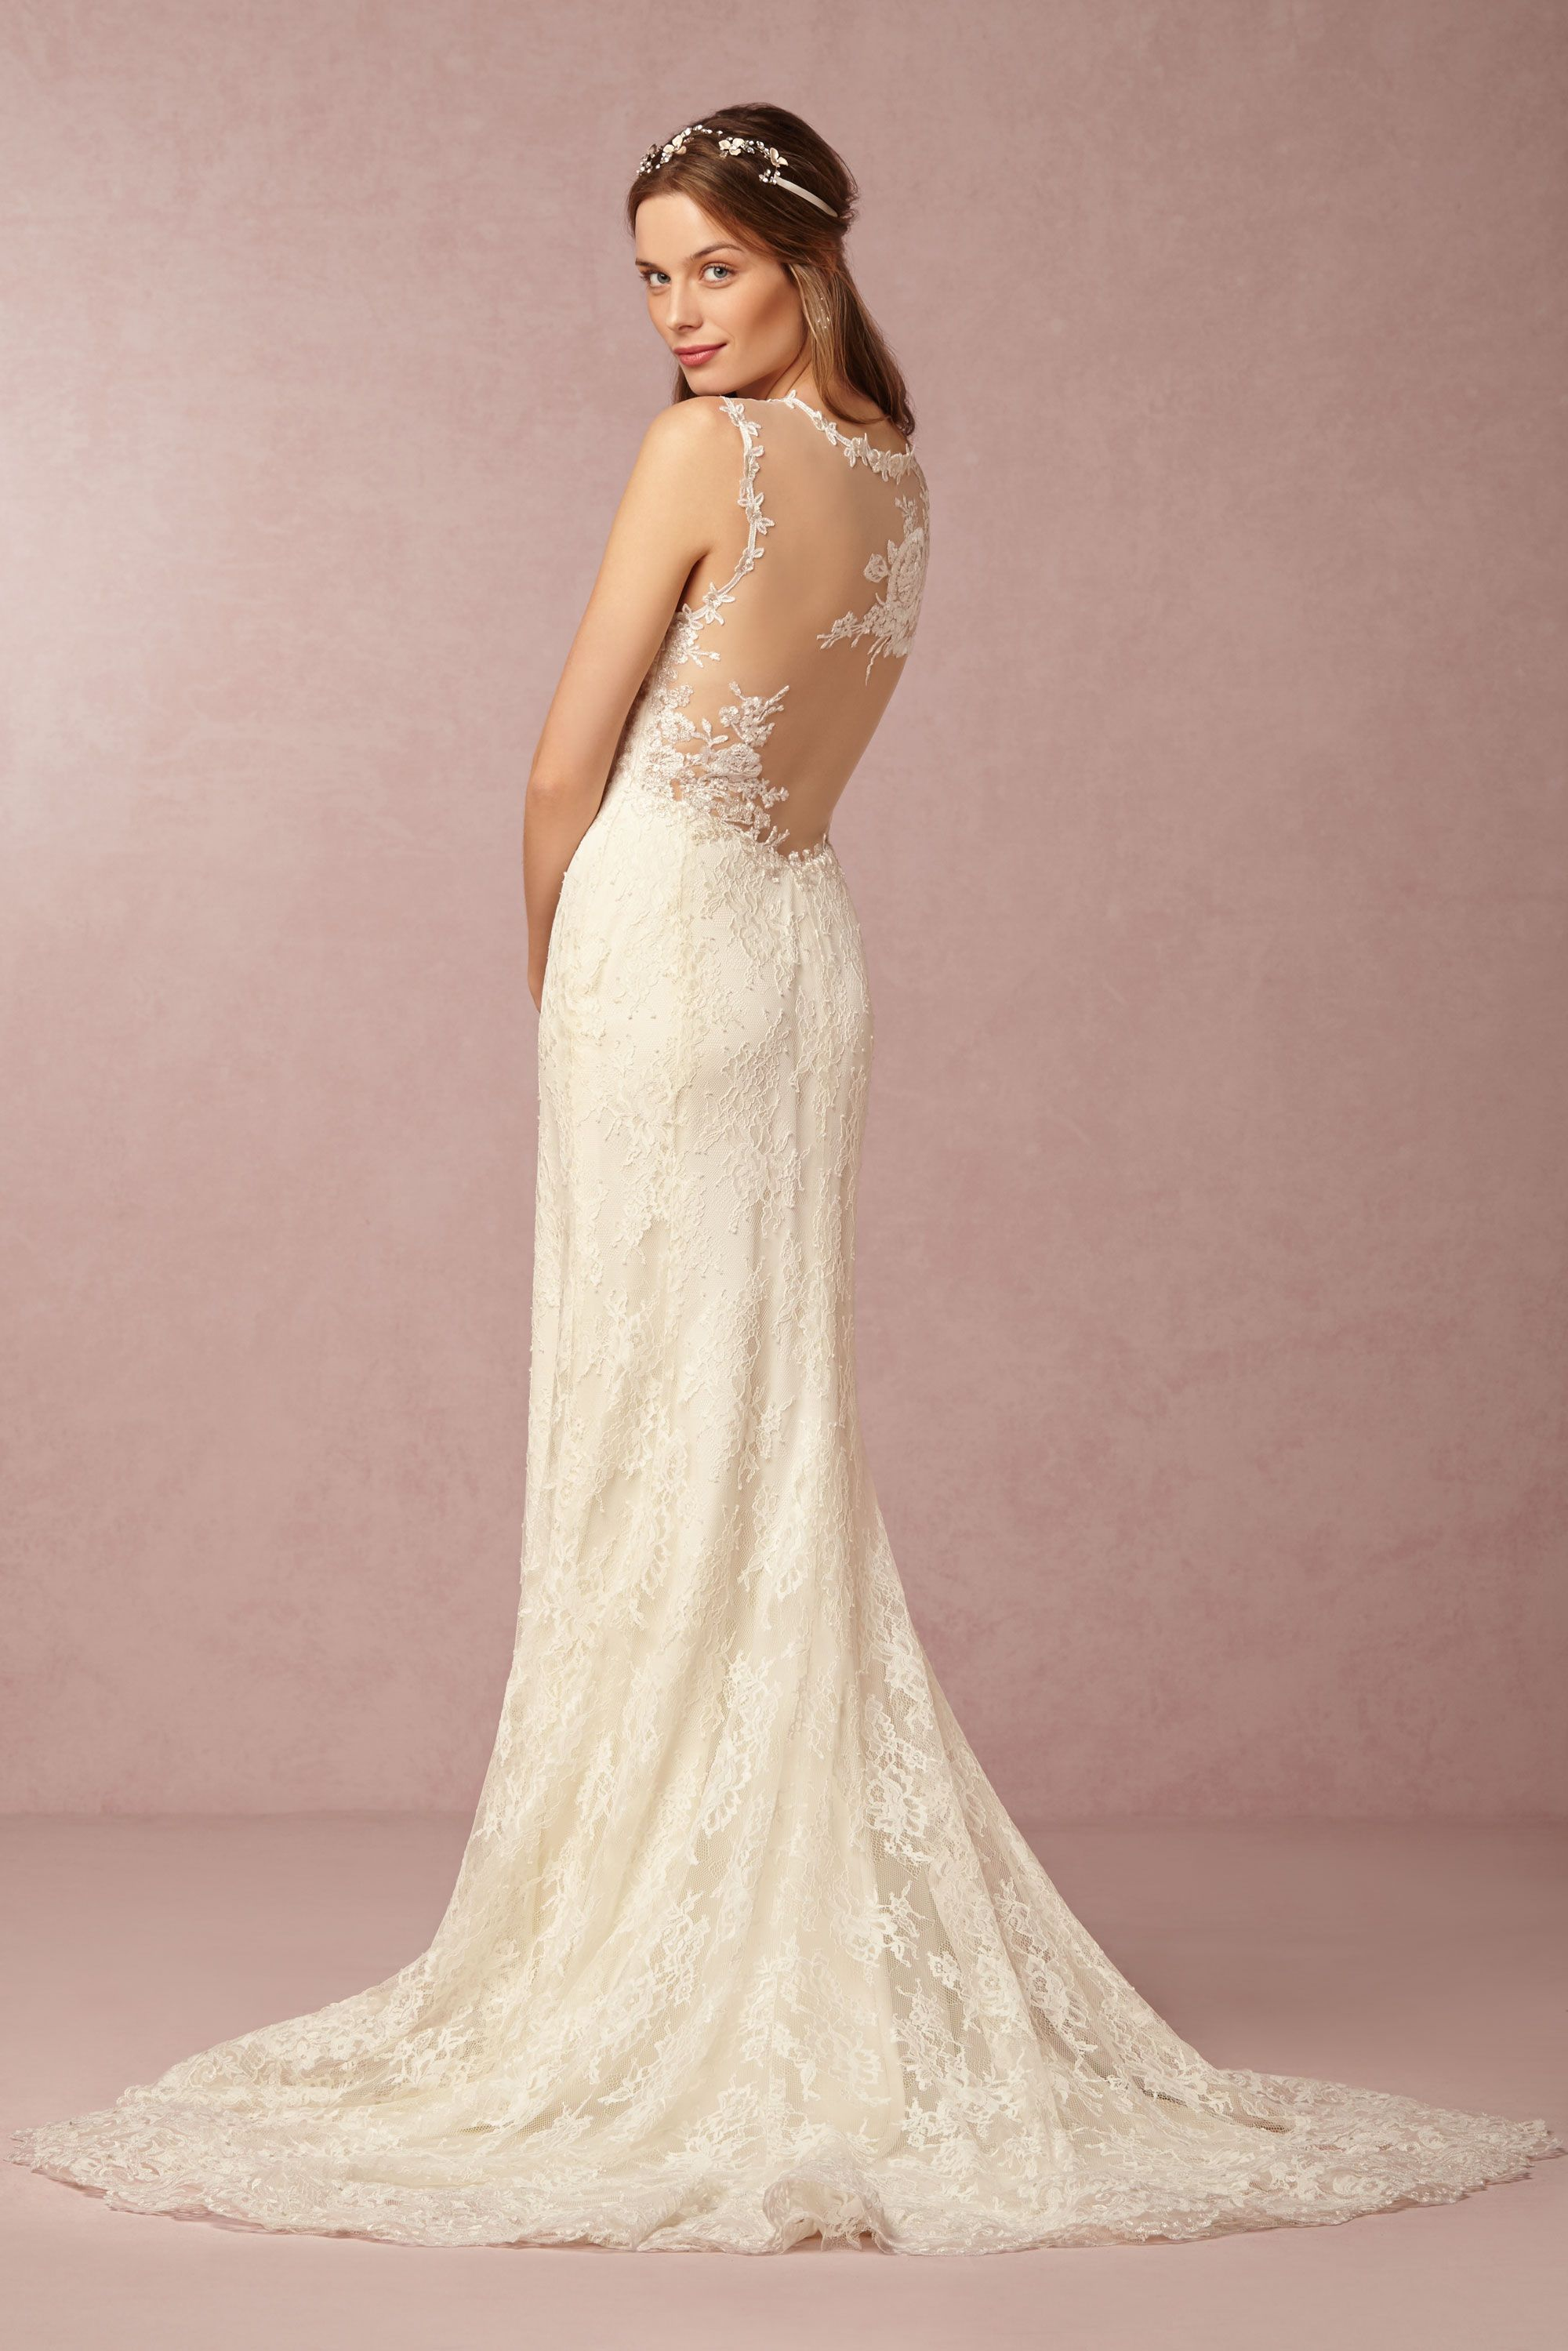 Briar Rose Wedding Gown a @BHLDN exclusive from Watters | GLAM ...